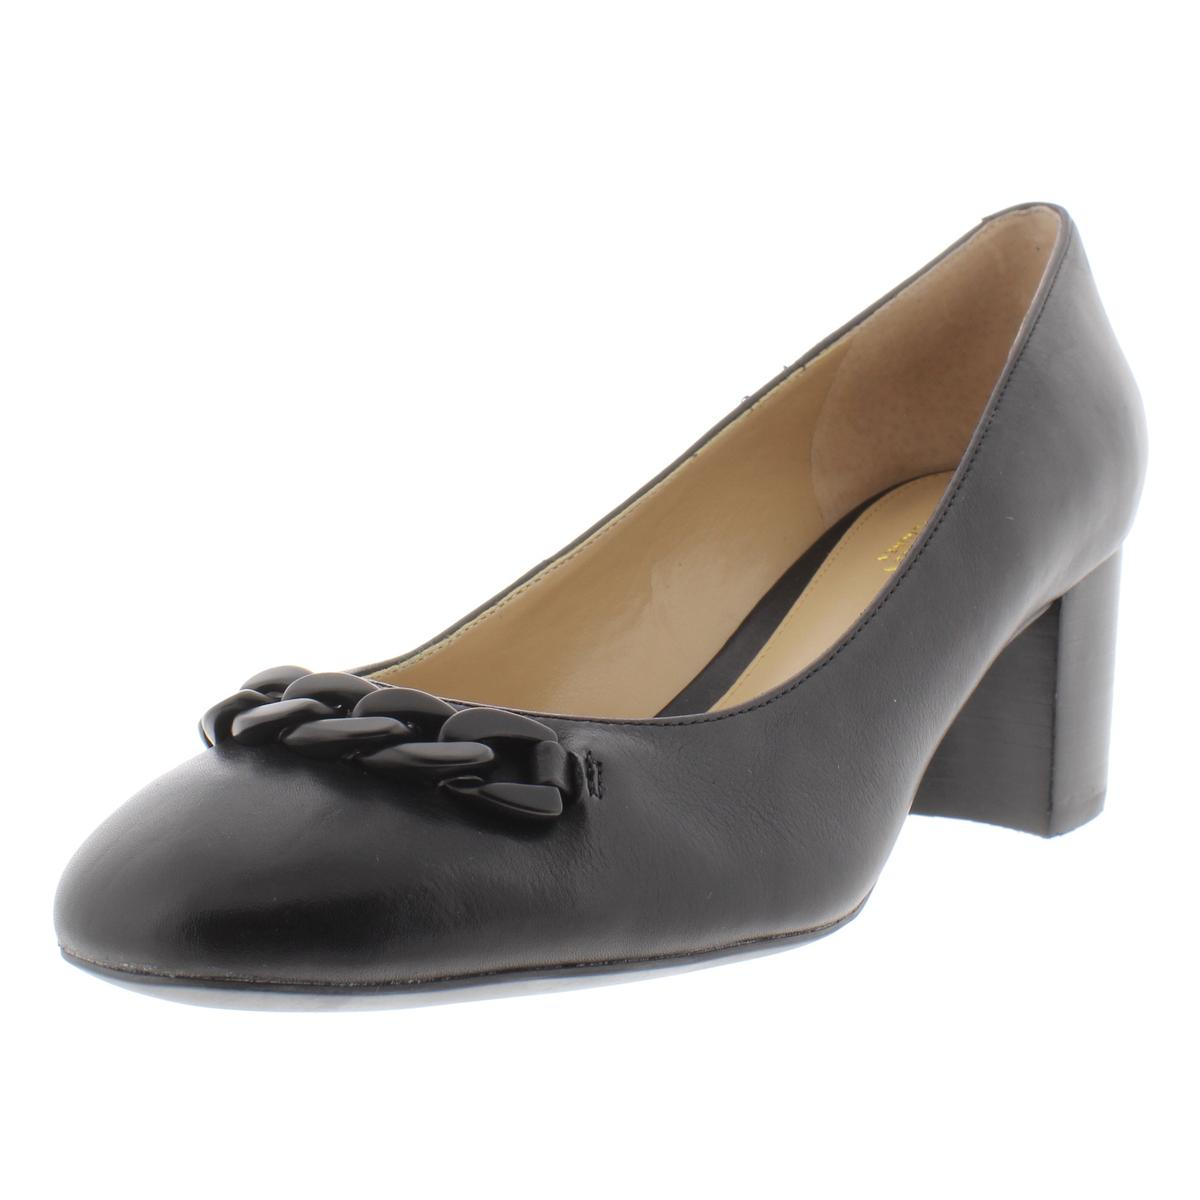 cc8a1dd9d Details about Lauren Ralph Lauren Womens Jacksen Black Block Heels 8 Medium  (B,M) BHFO 8500